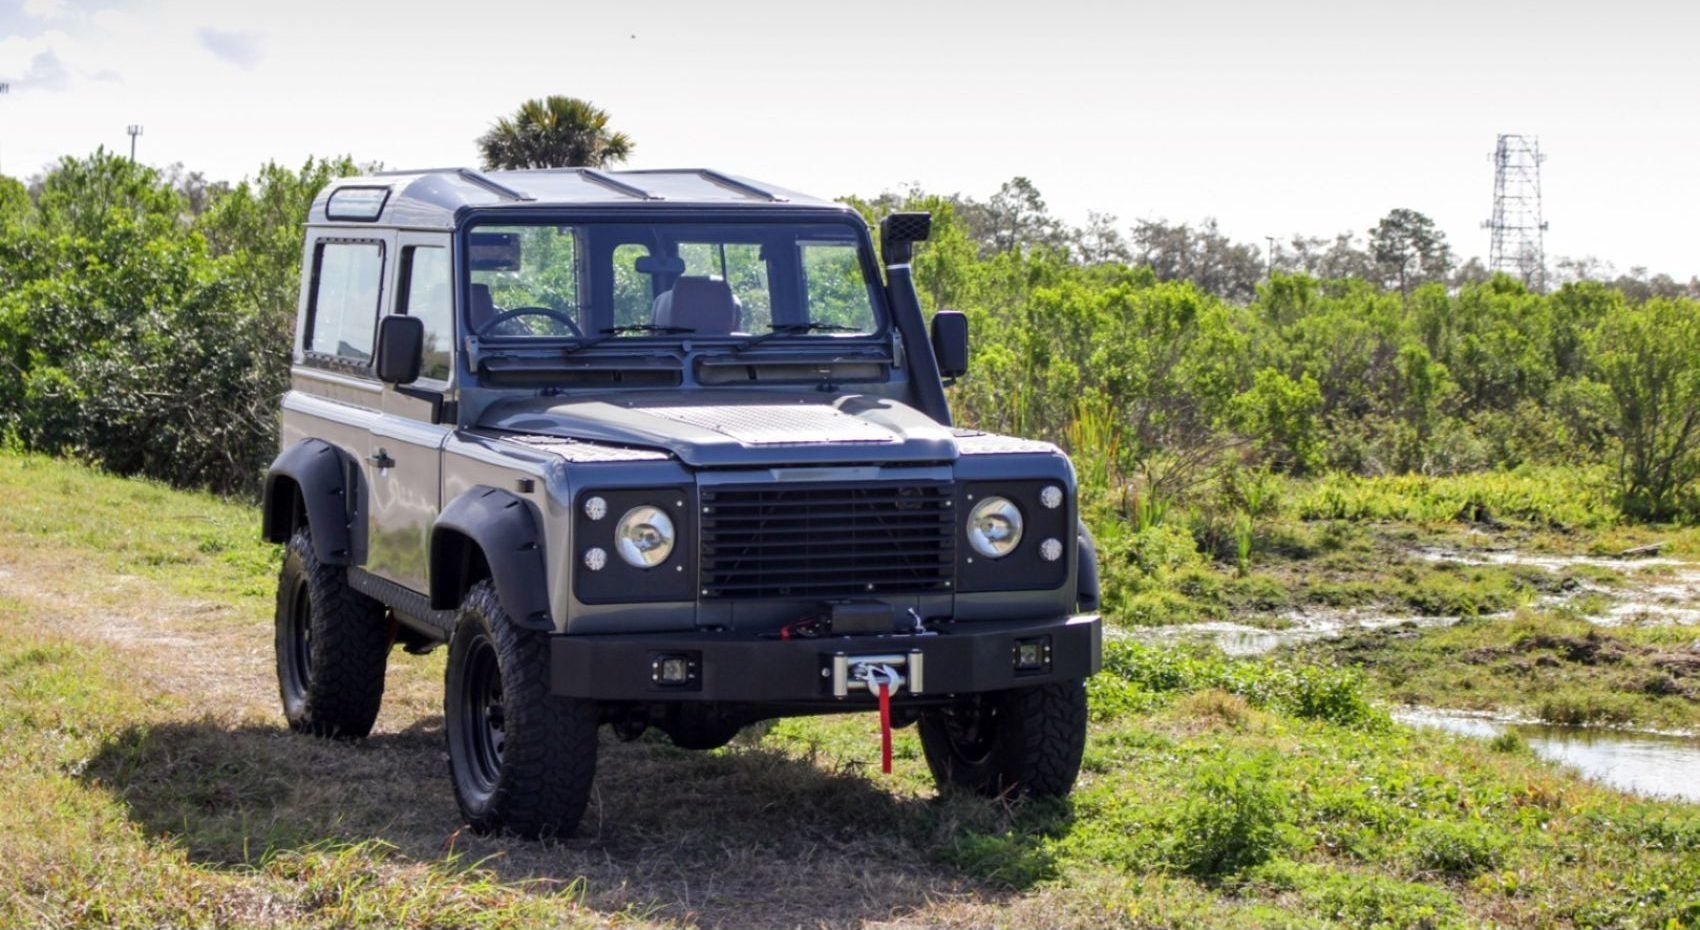 Importing A Classic Land Rover Defender? Read This First